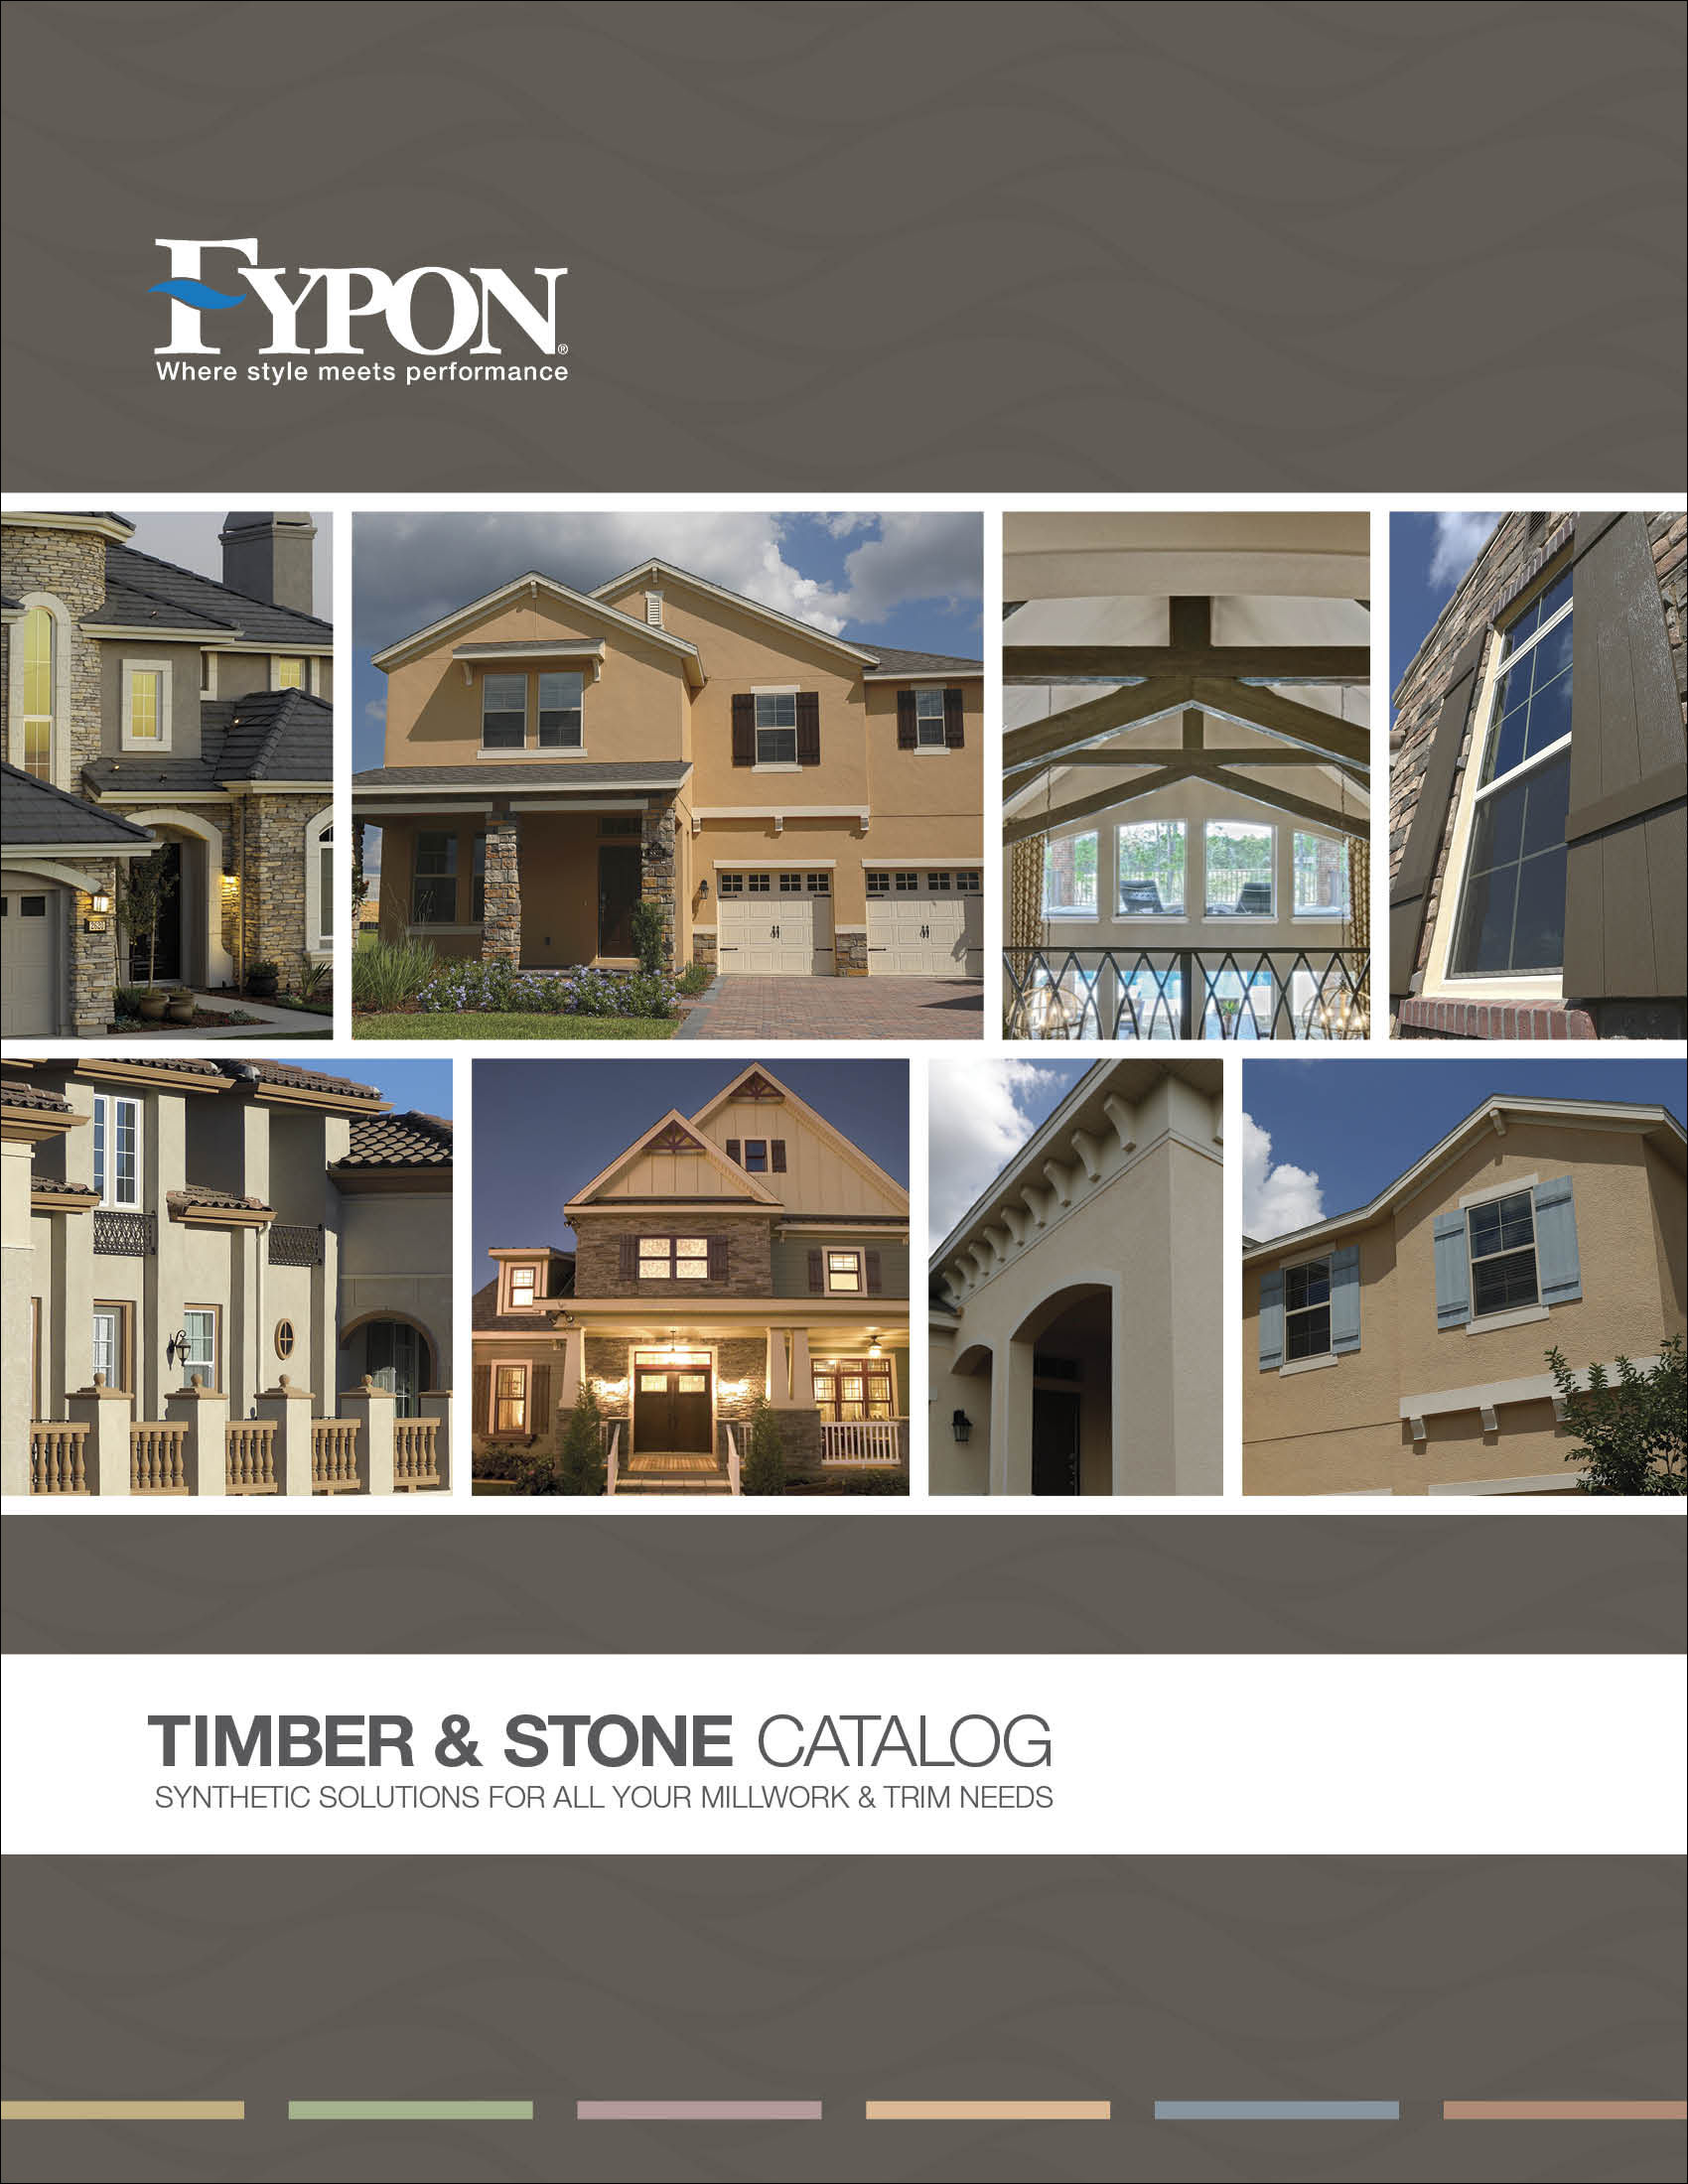 Fypon timber stone catalog by chelsea hall at for Fypon molded millwork